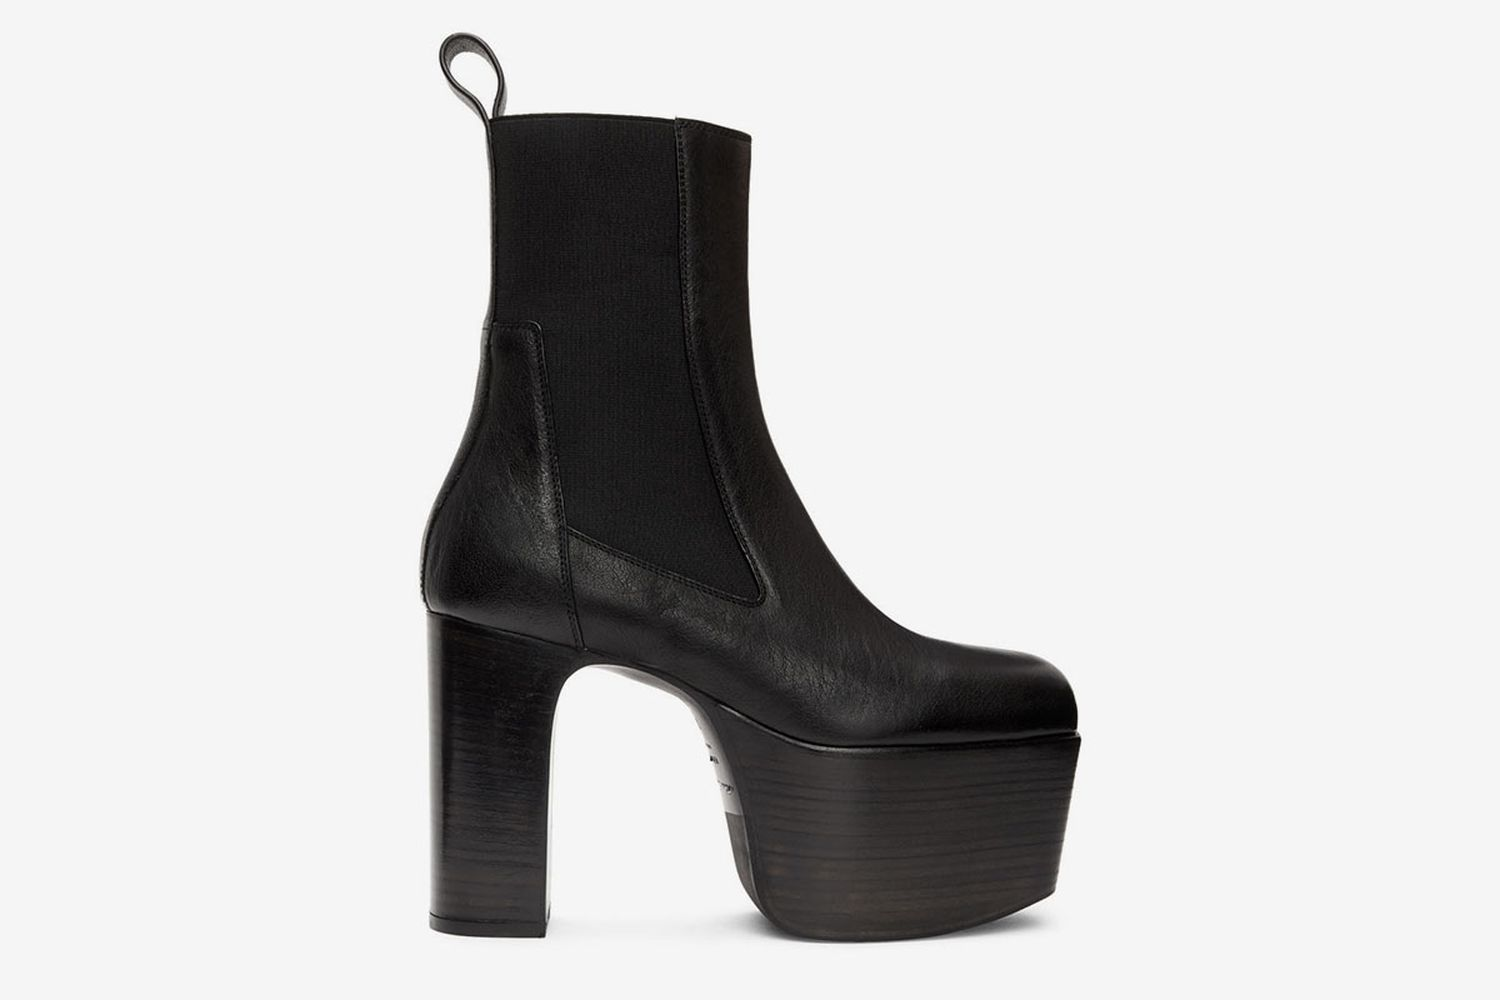 Kiss Chelsea Boots